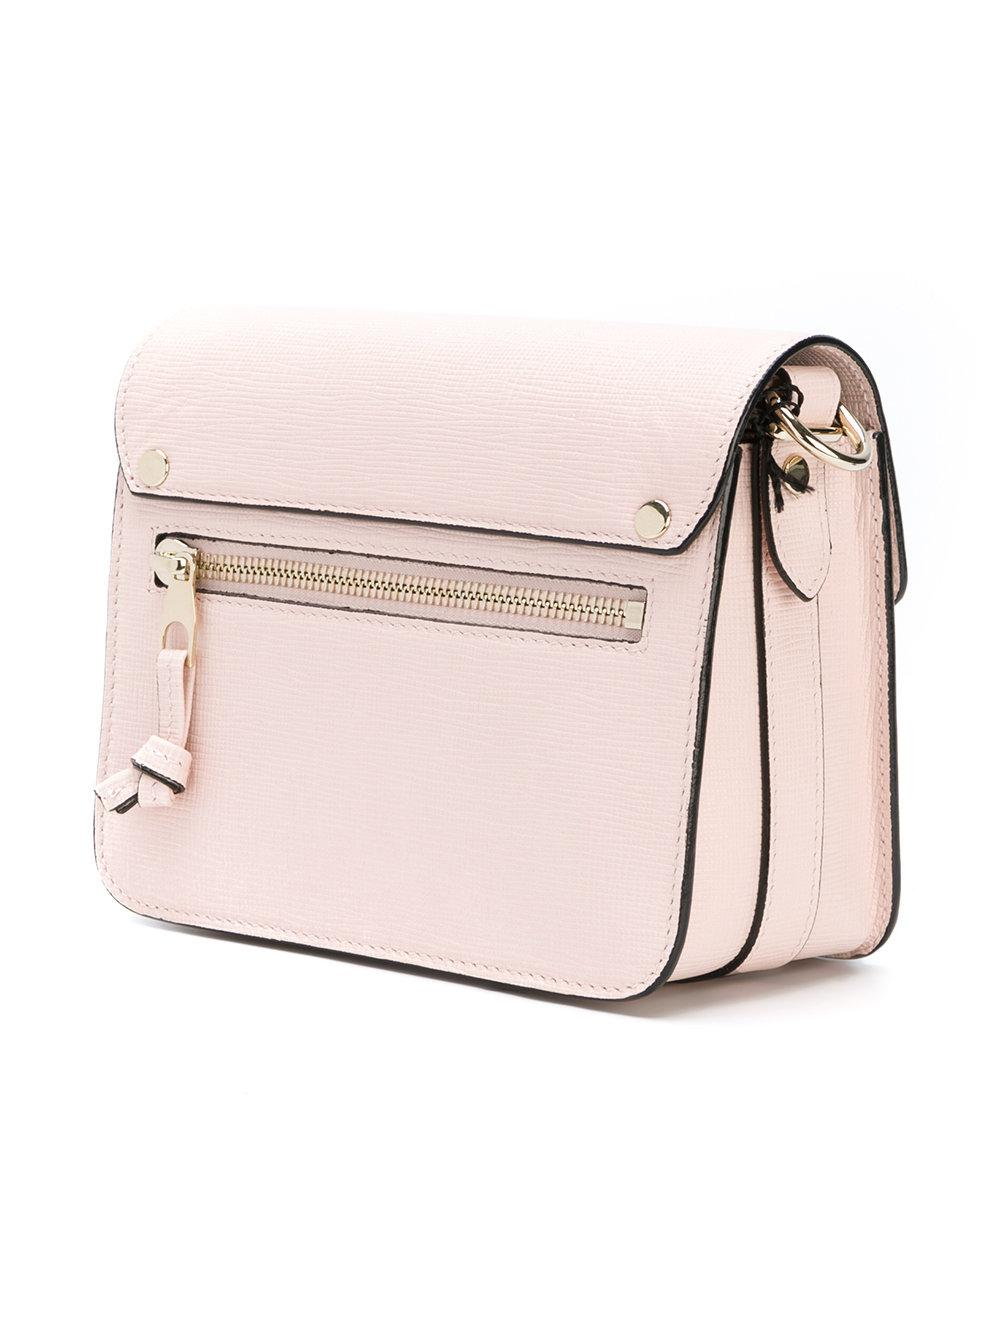 Proenza Schouler Leather Ps11 Mini Tote in Pink & Purple (Pink)